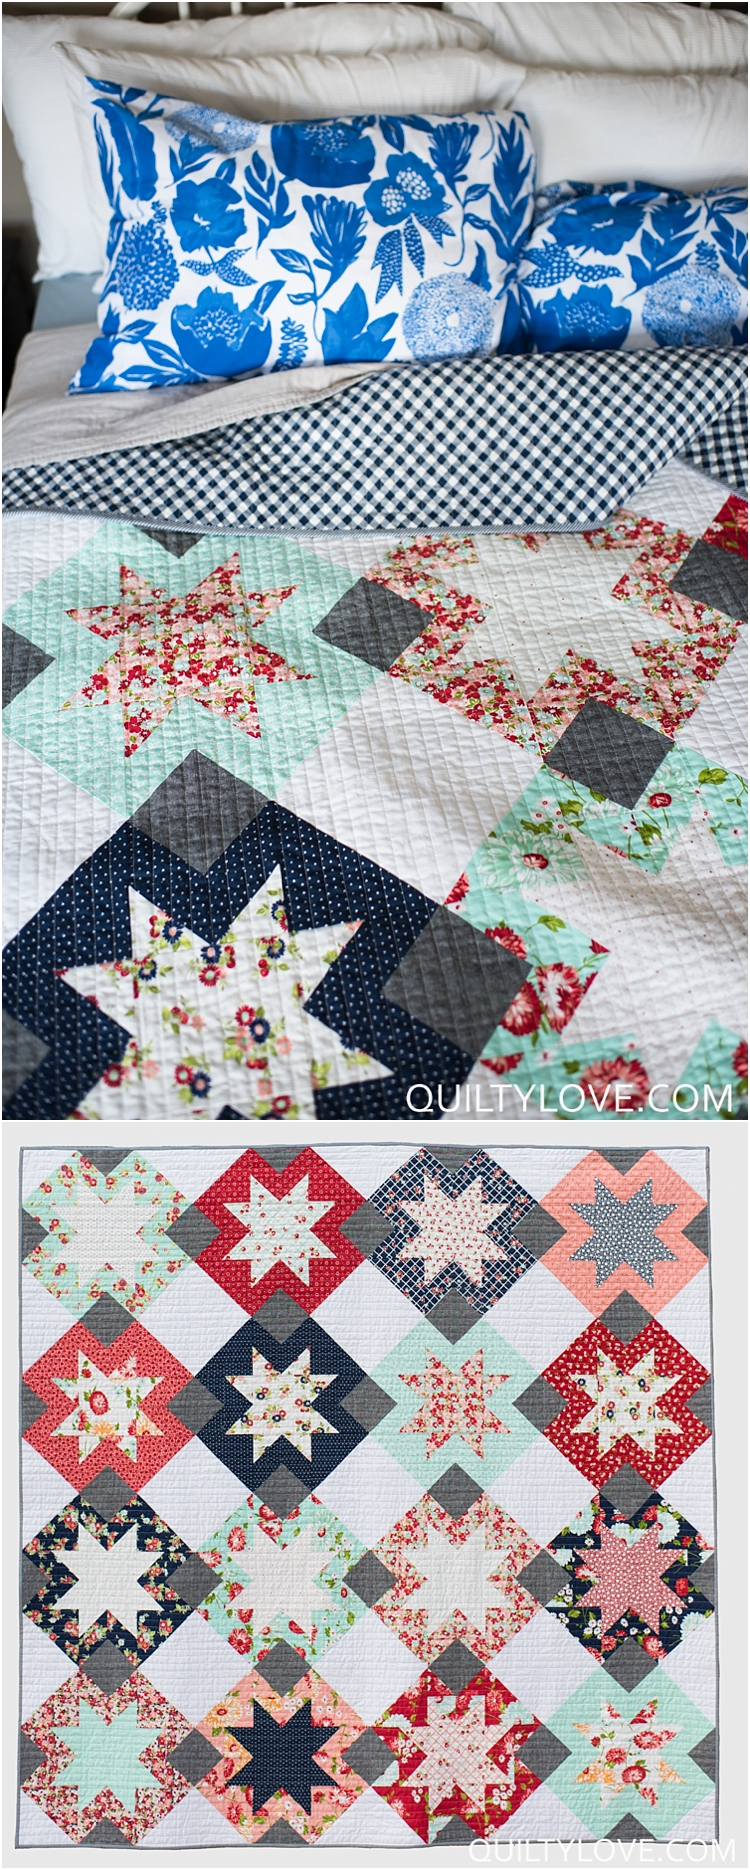 North Star Quilt A Sawtooth Star Quilt Pattern Quilty Love